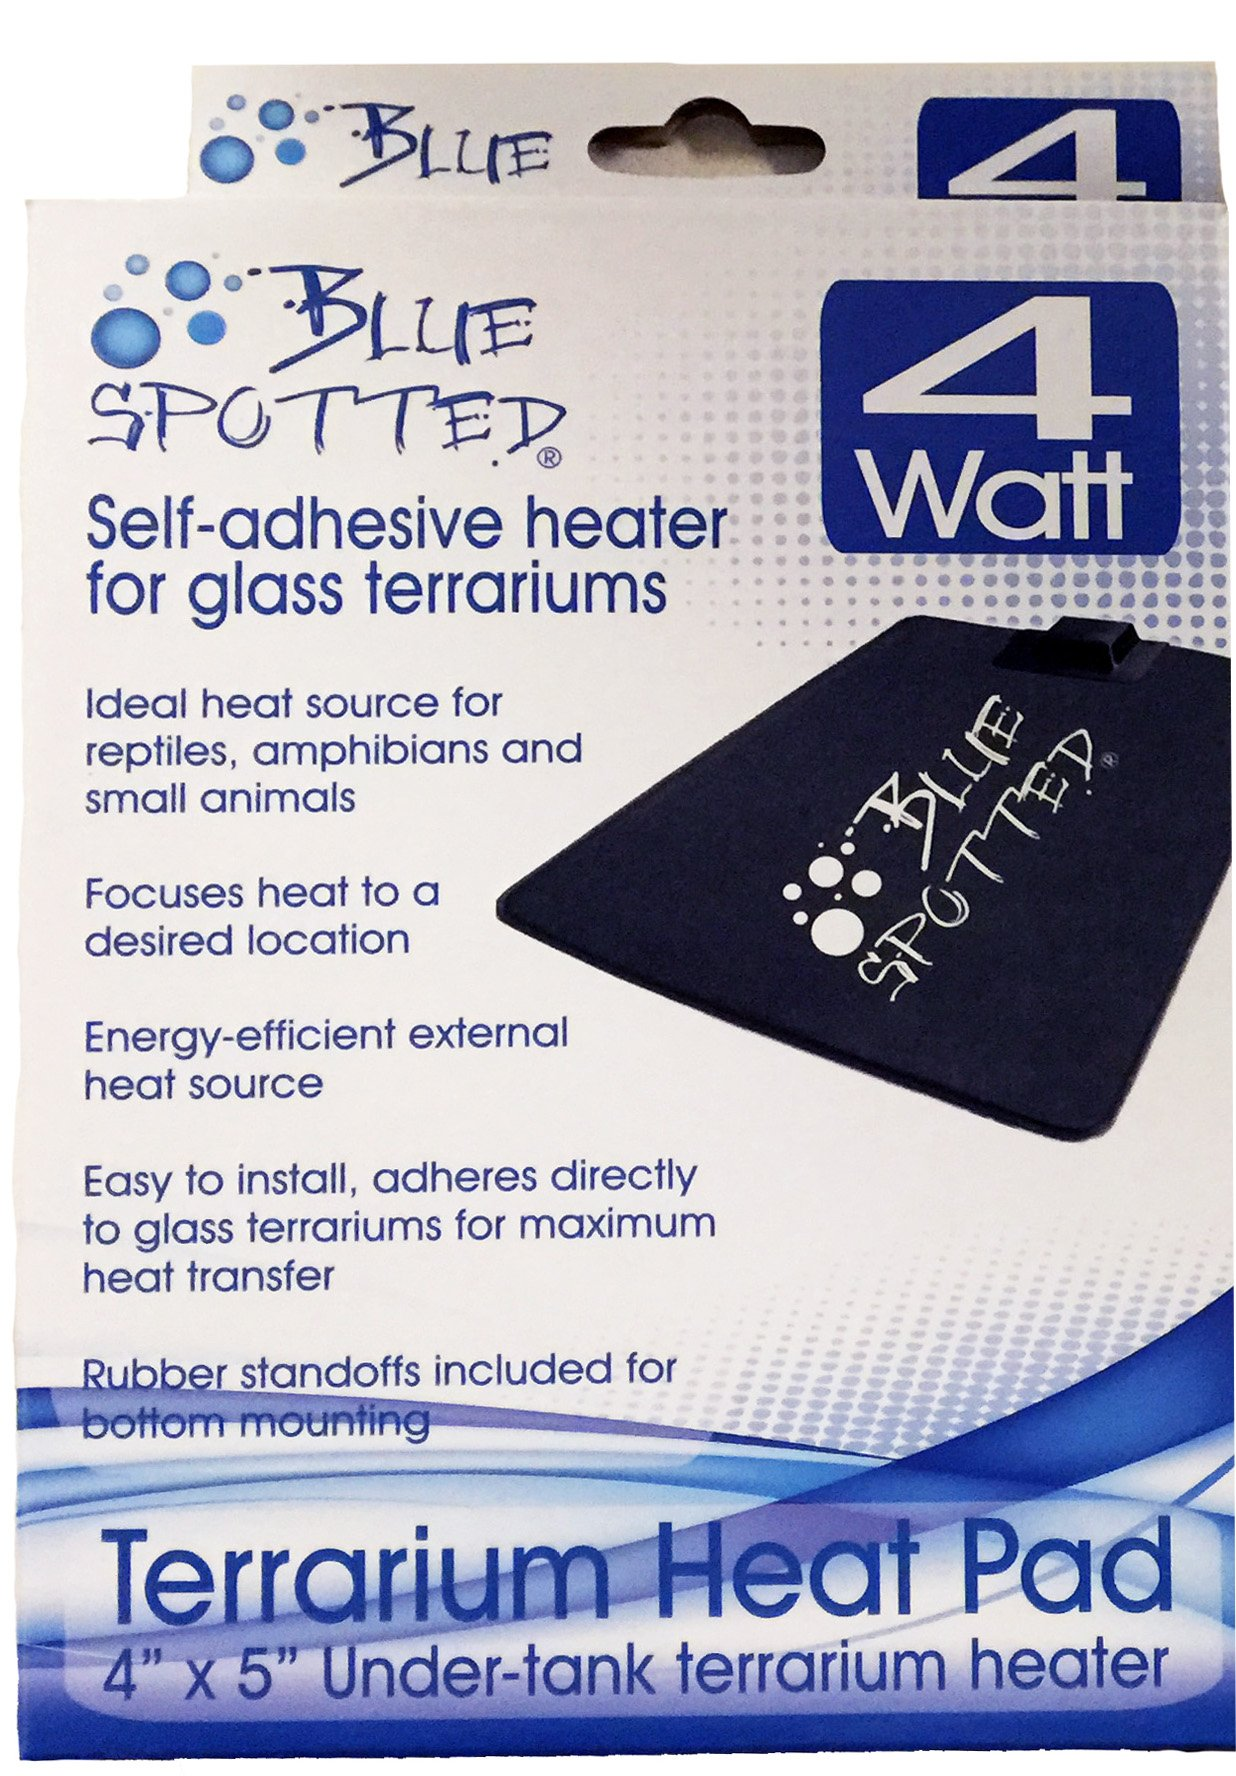 Blue Spotted Under Tank Heater, Terrarium Heat Pad, Size Mini, For Reptiles, Amphibians, Hermit Crabs, and Small Animals - Use With Glass Terrariums - Size Mini- 4 Inch x 5 Inch